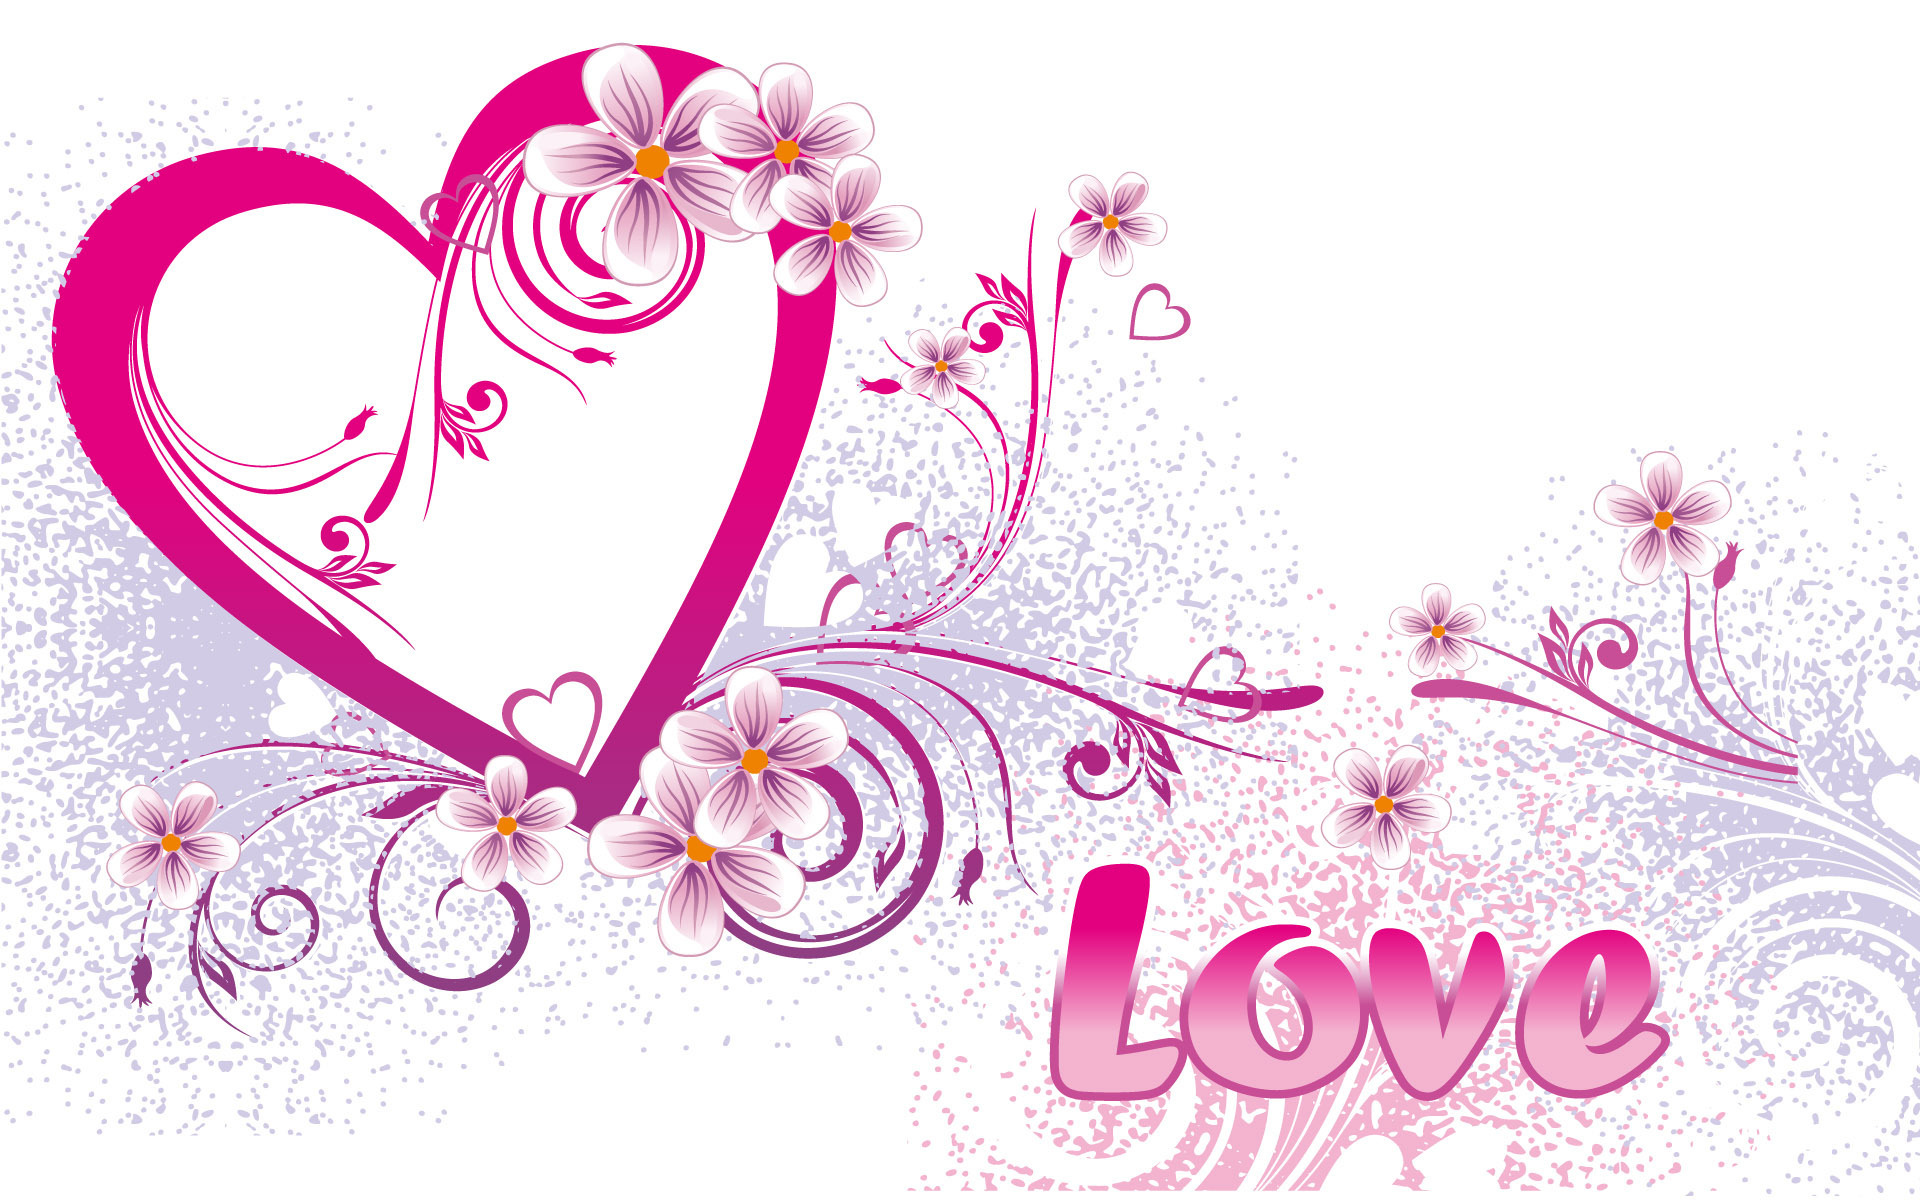 Love wallpaper love 4187632 1920 1200 love 20 26 20peace